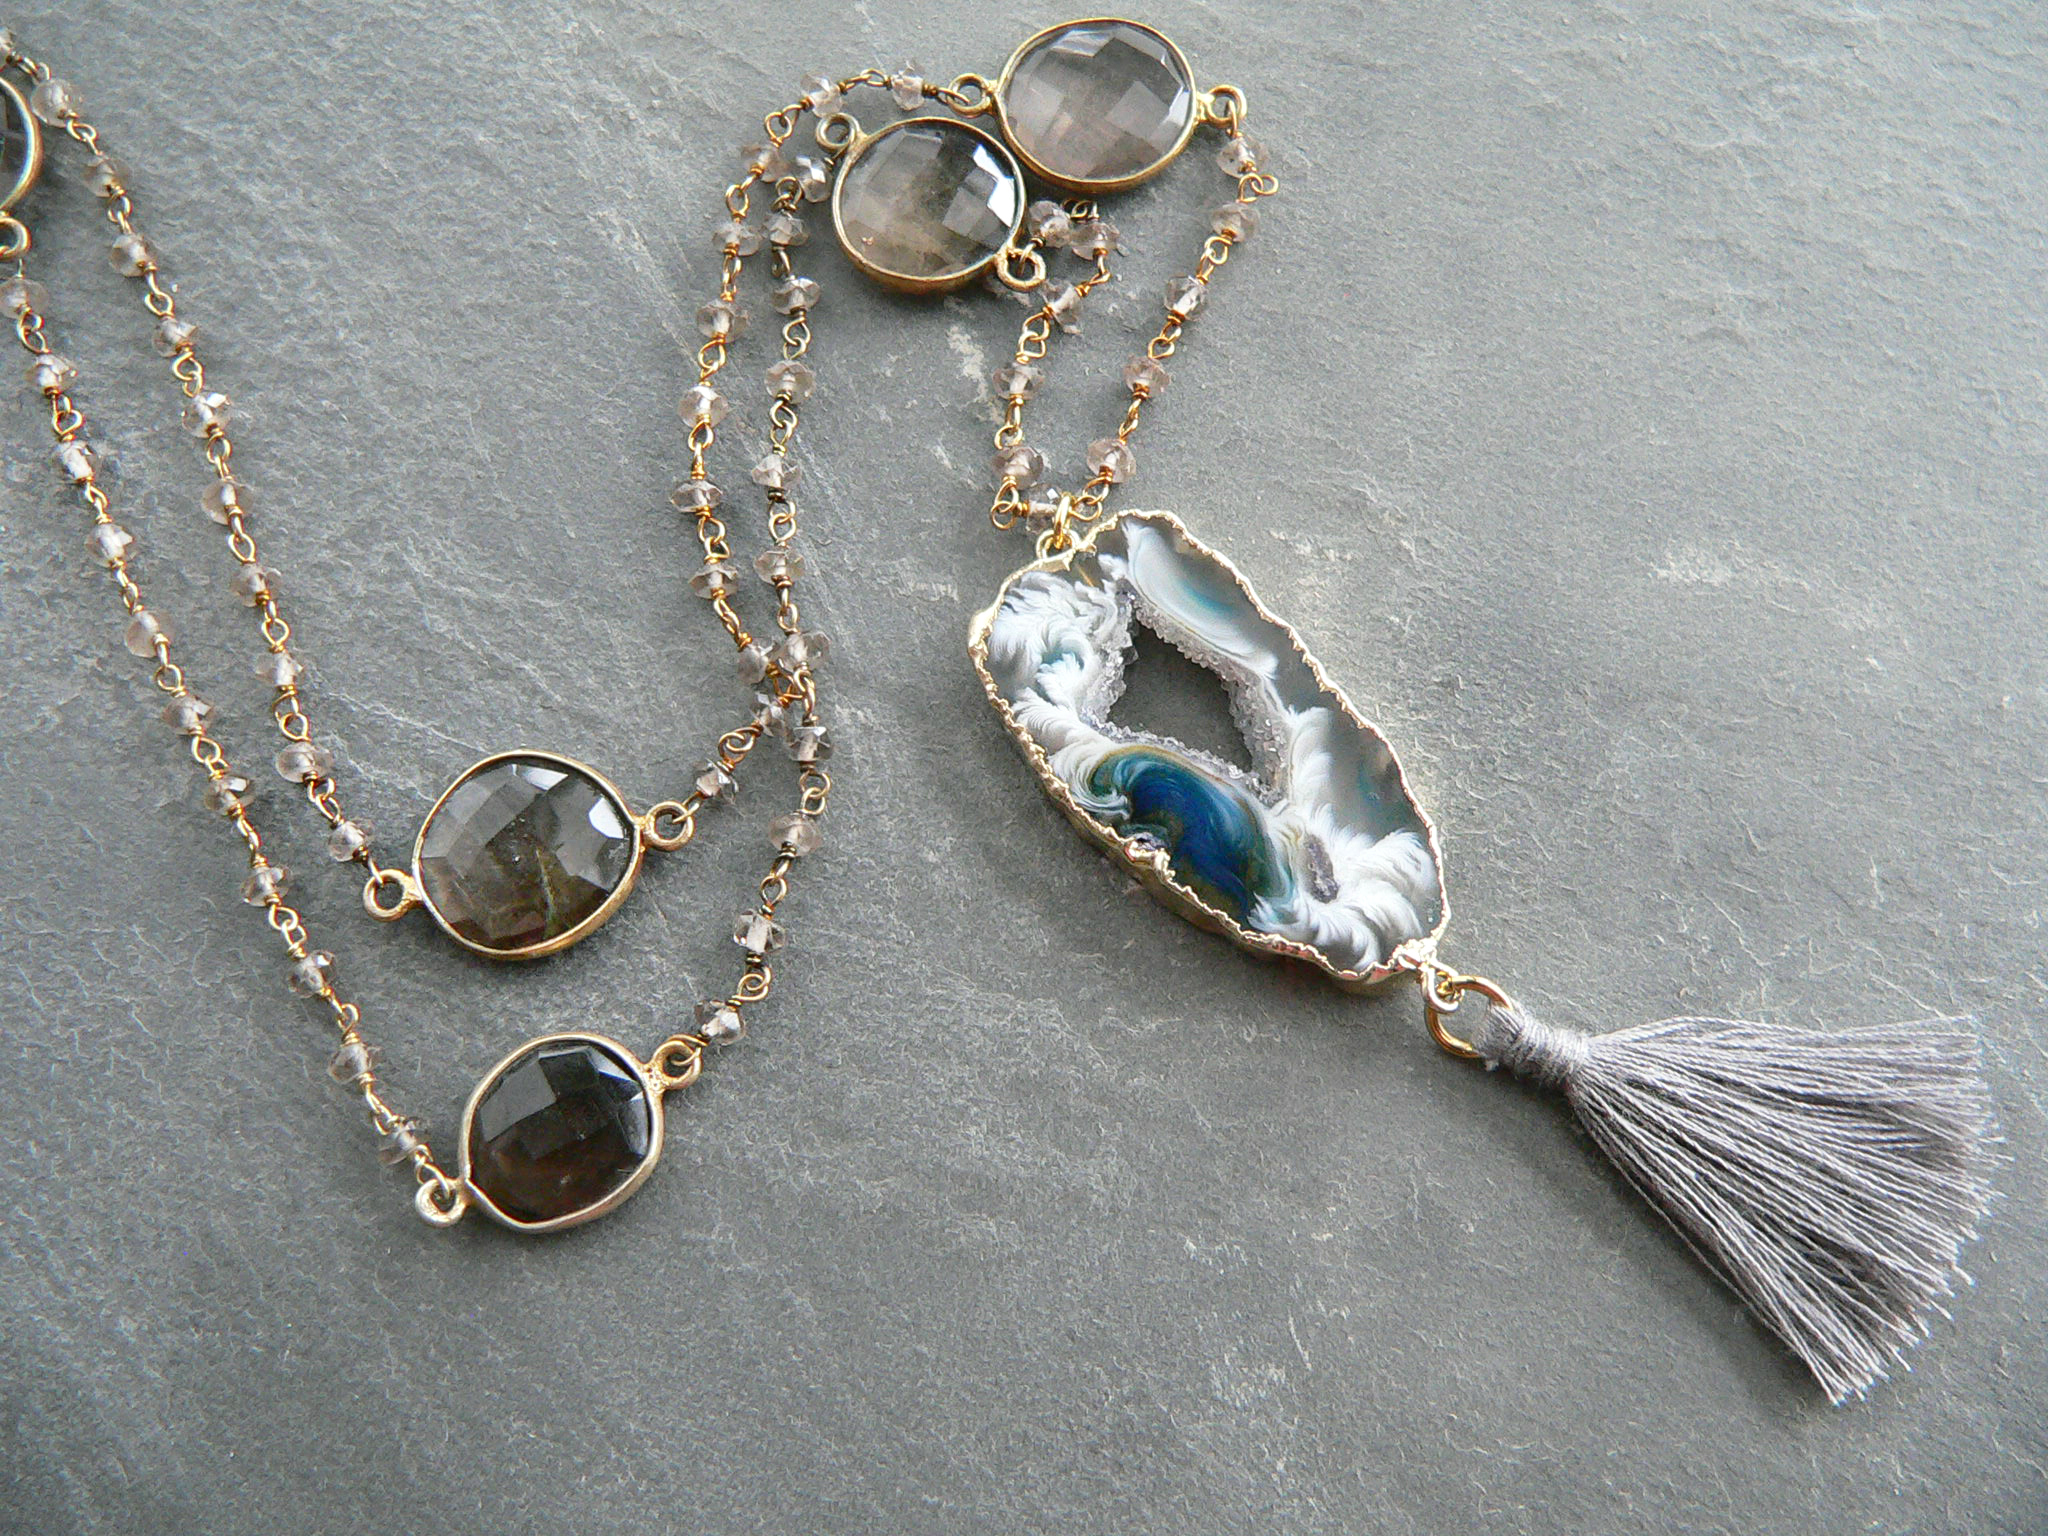 BLUE GEODE + SMOKEY QUARTZ NECKLACE